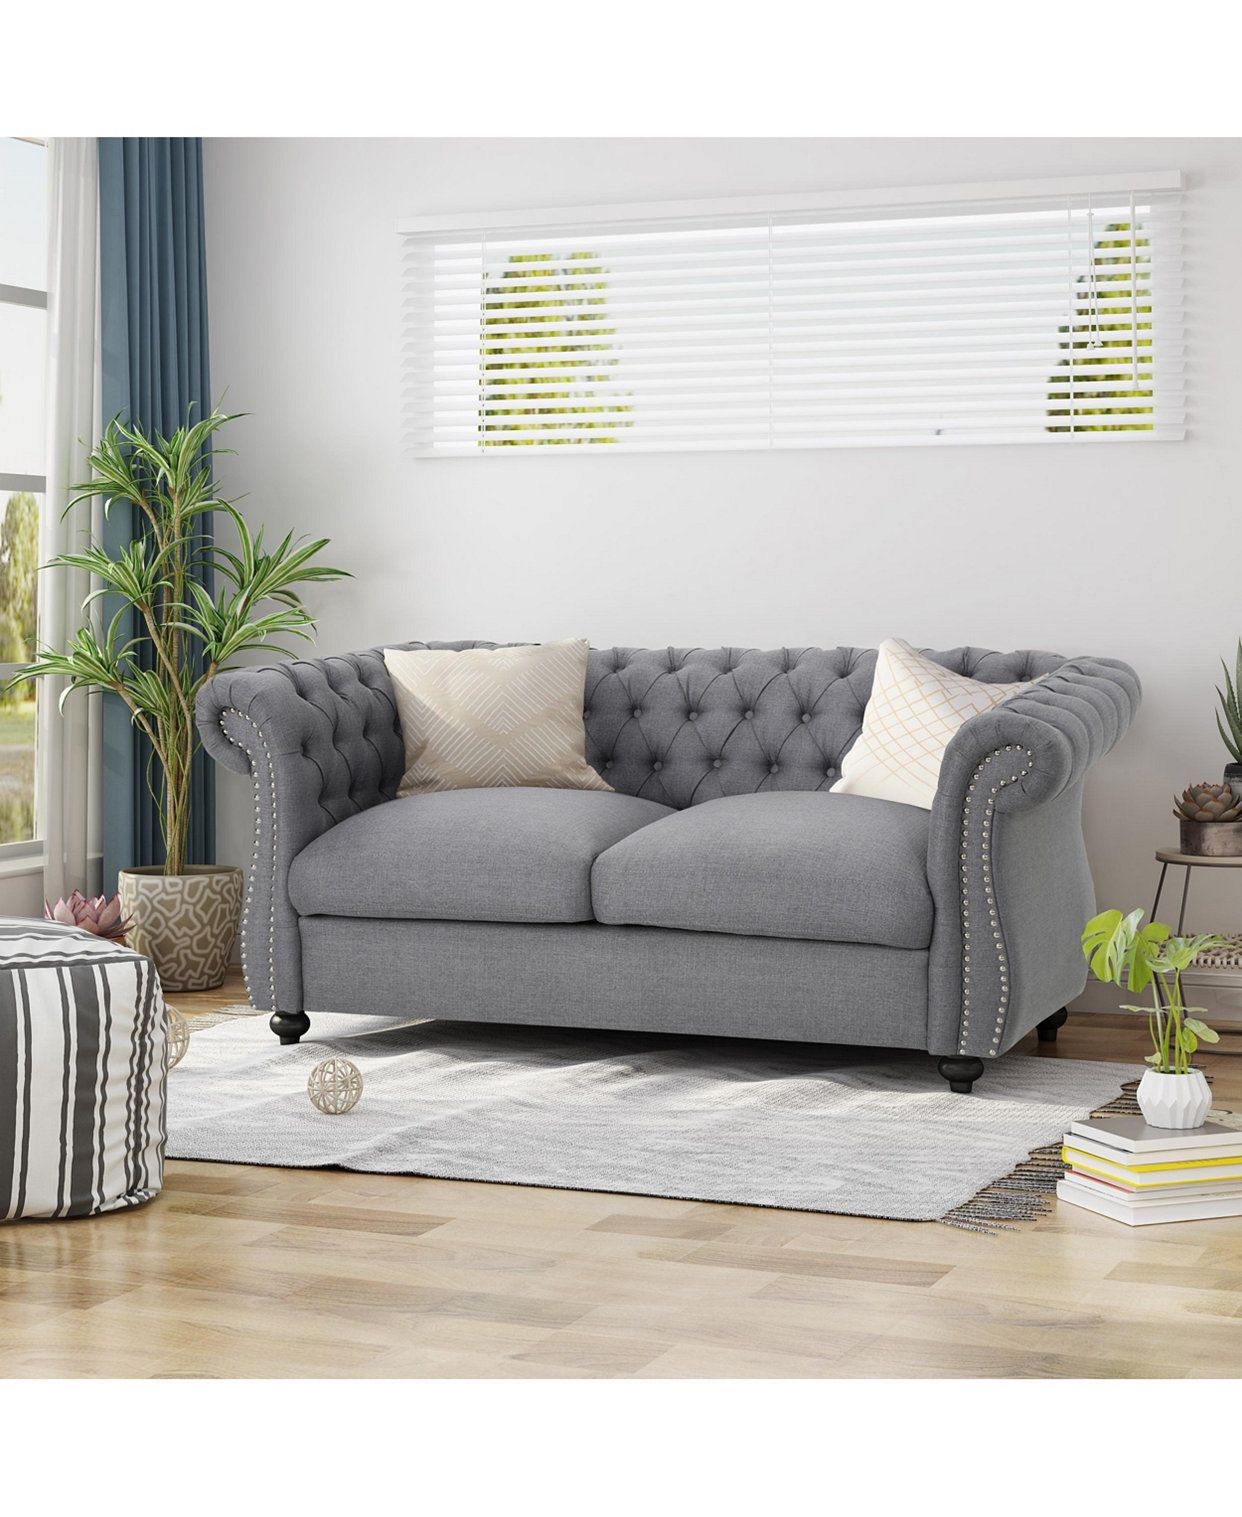 Noble House Somerville Loveseat Reviews Furniture Macy S In 2020 Love Seat Noble House Loveseat Sofa